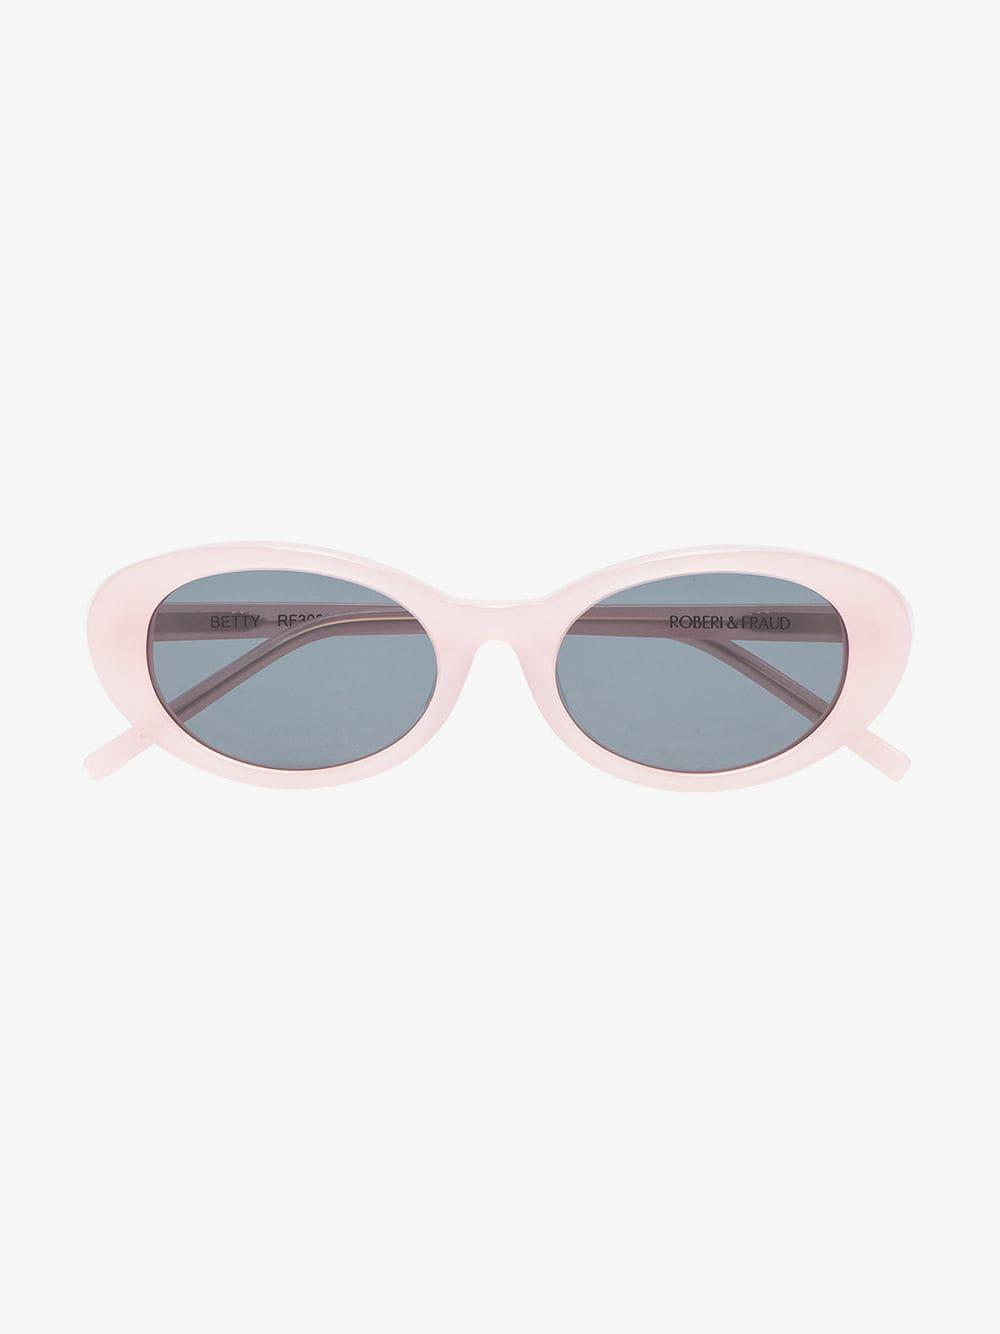 2ba683d9cd ROBERI AND FRAUD - Light Pink Betty Oval Sunglasses - Lyst. View fullscreen